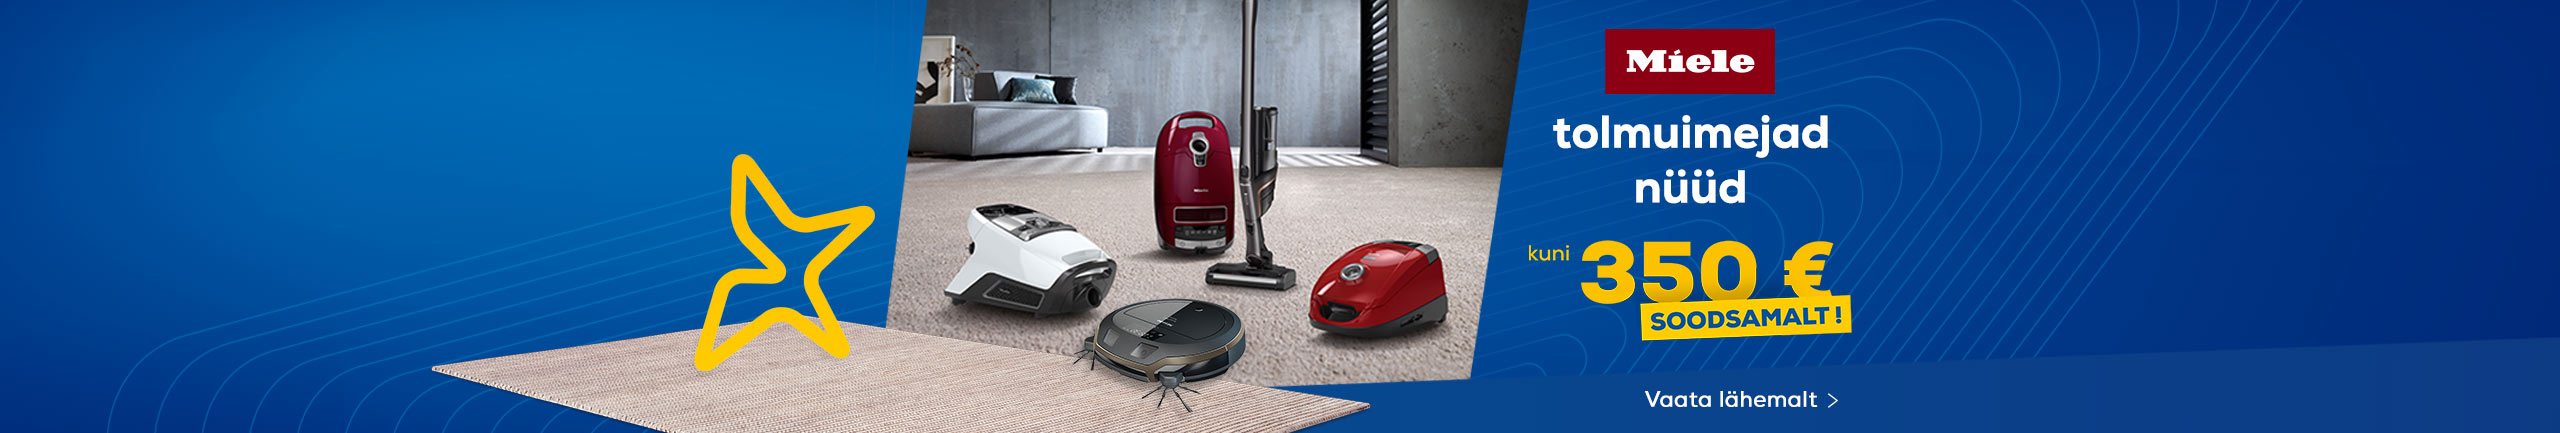 Miele vacuum cleaner discount up to 350 €